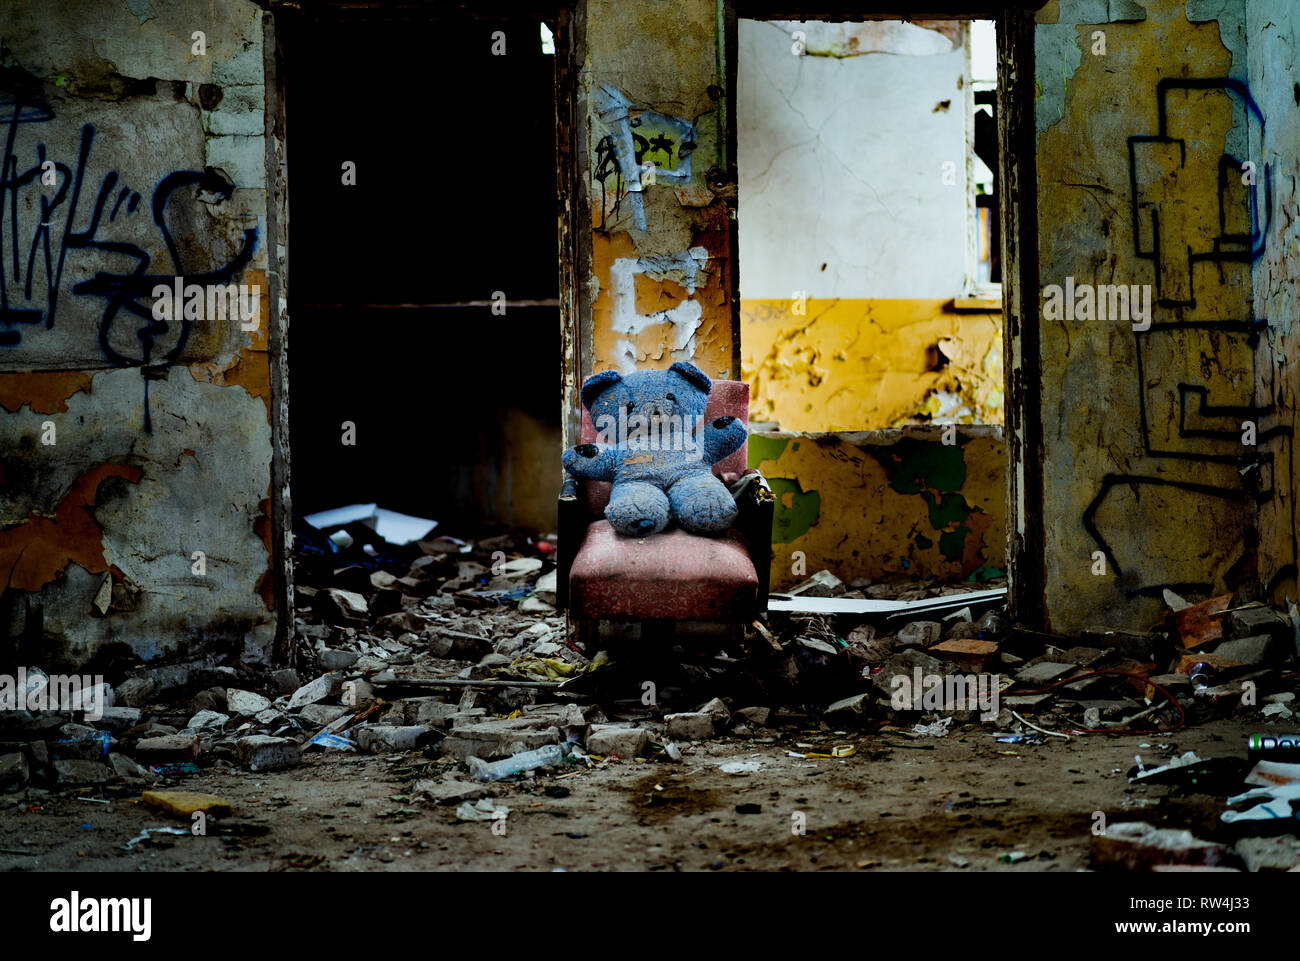 Alone teddy bear in closed chemical fiber factory 'Chemitex' - Stock Image